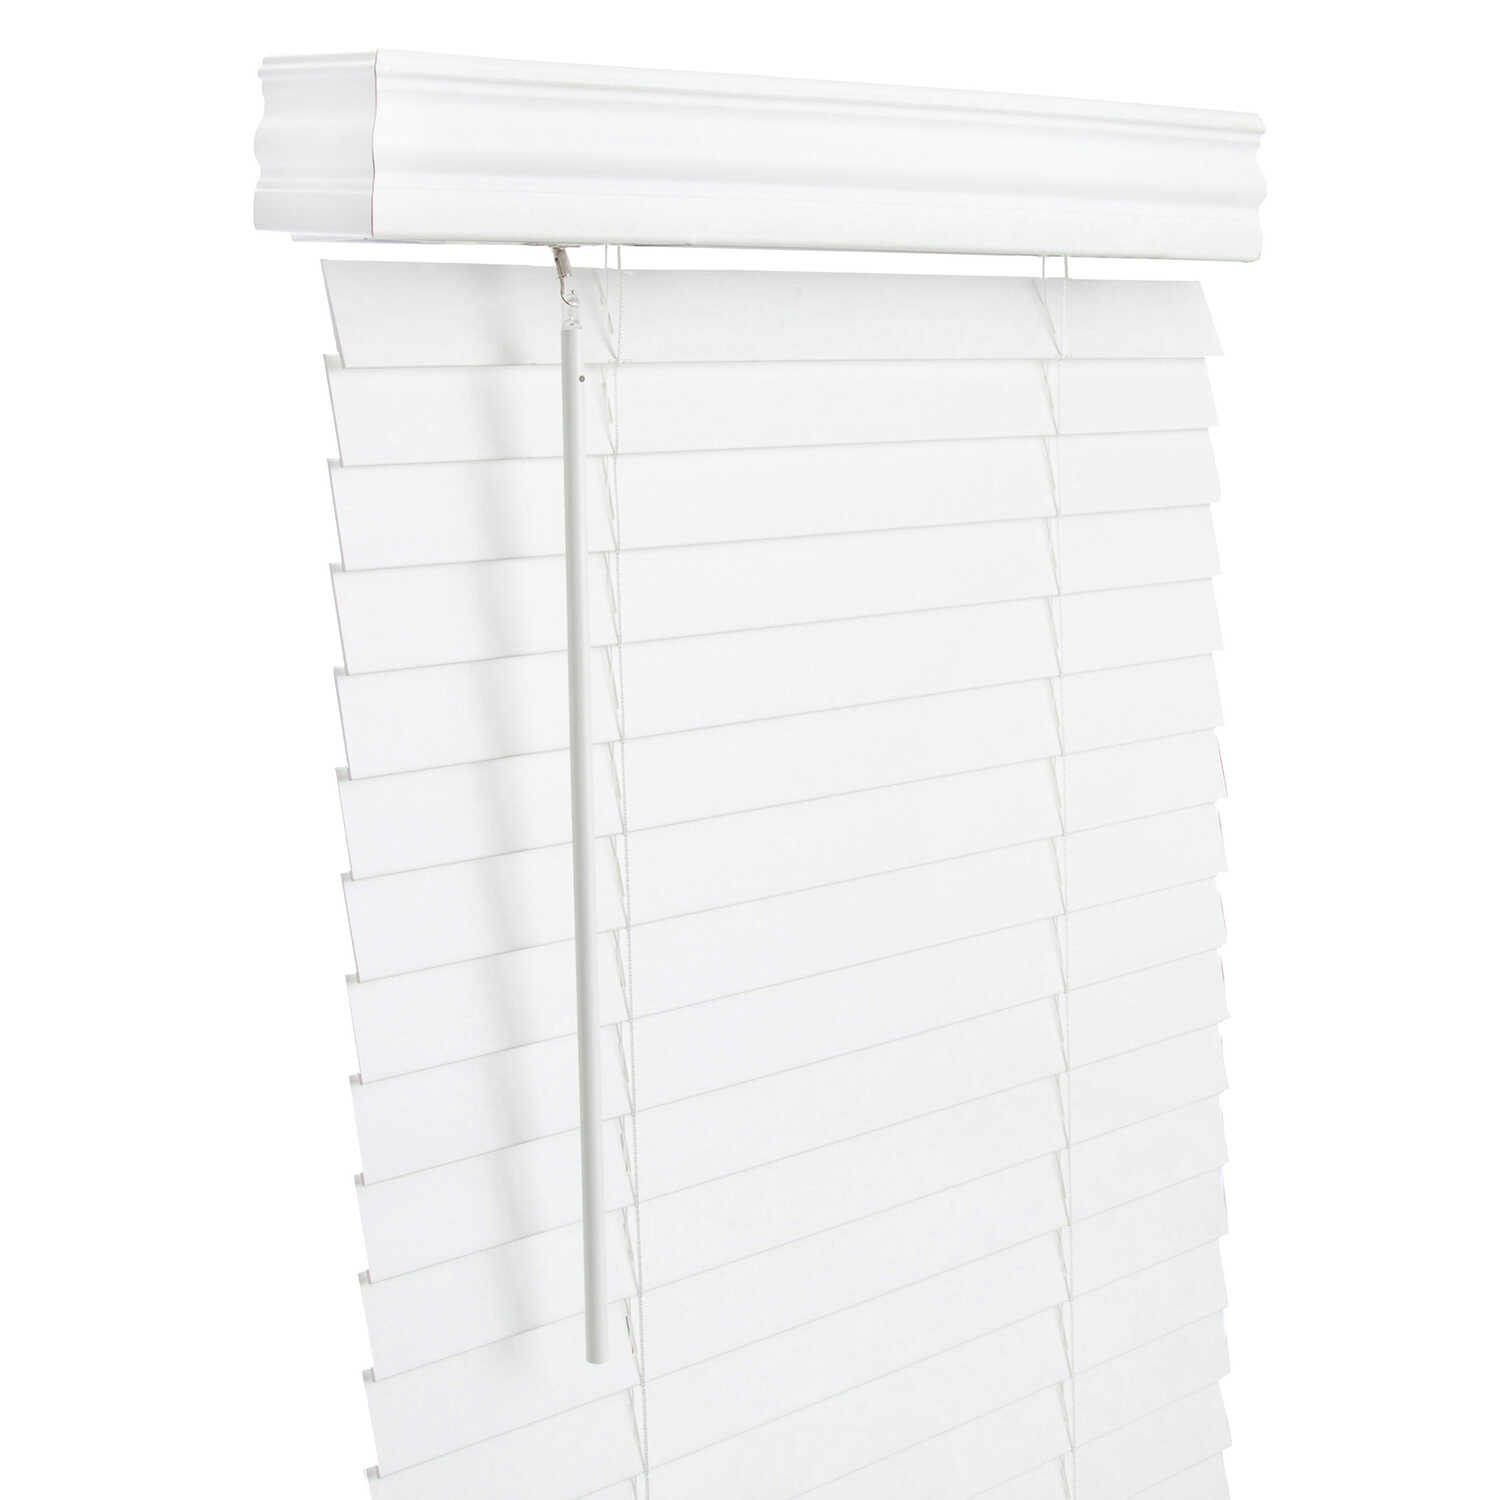 Living Accents  Faux Wood  2 in. Mini-Blinds  30 in. W x 60 in. H White  Cordless